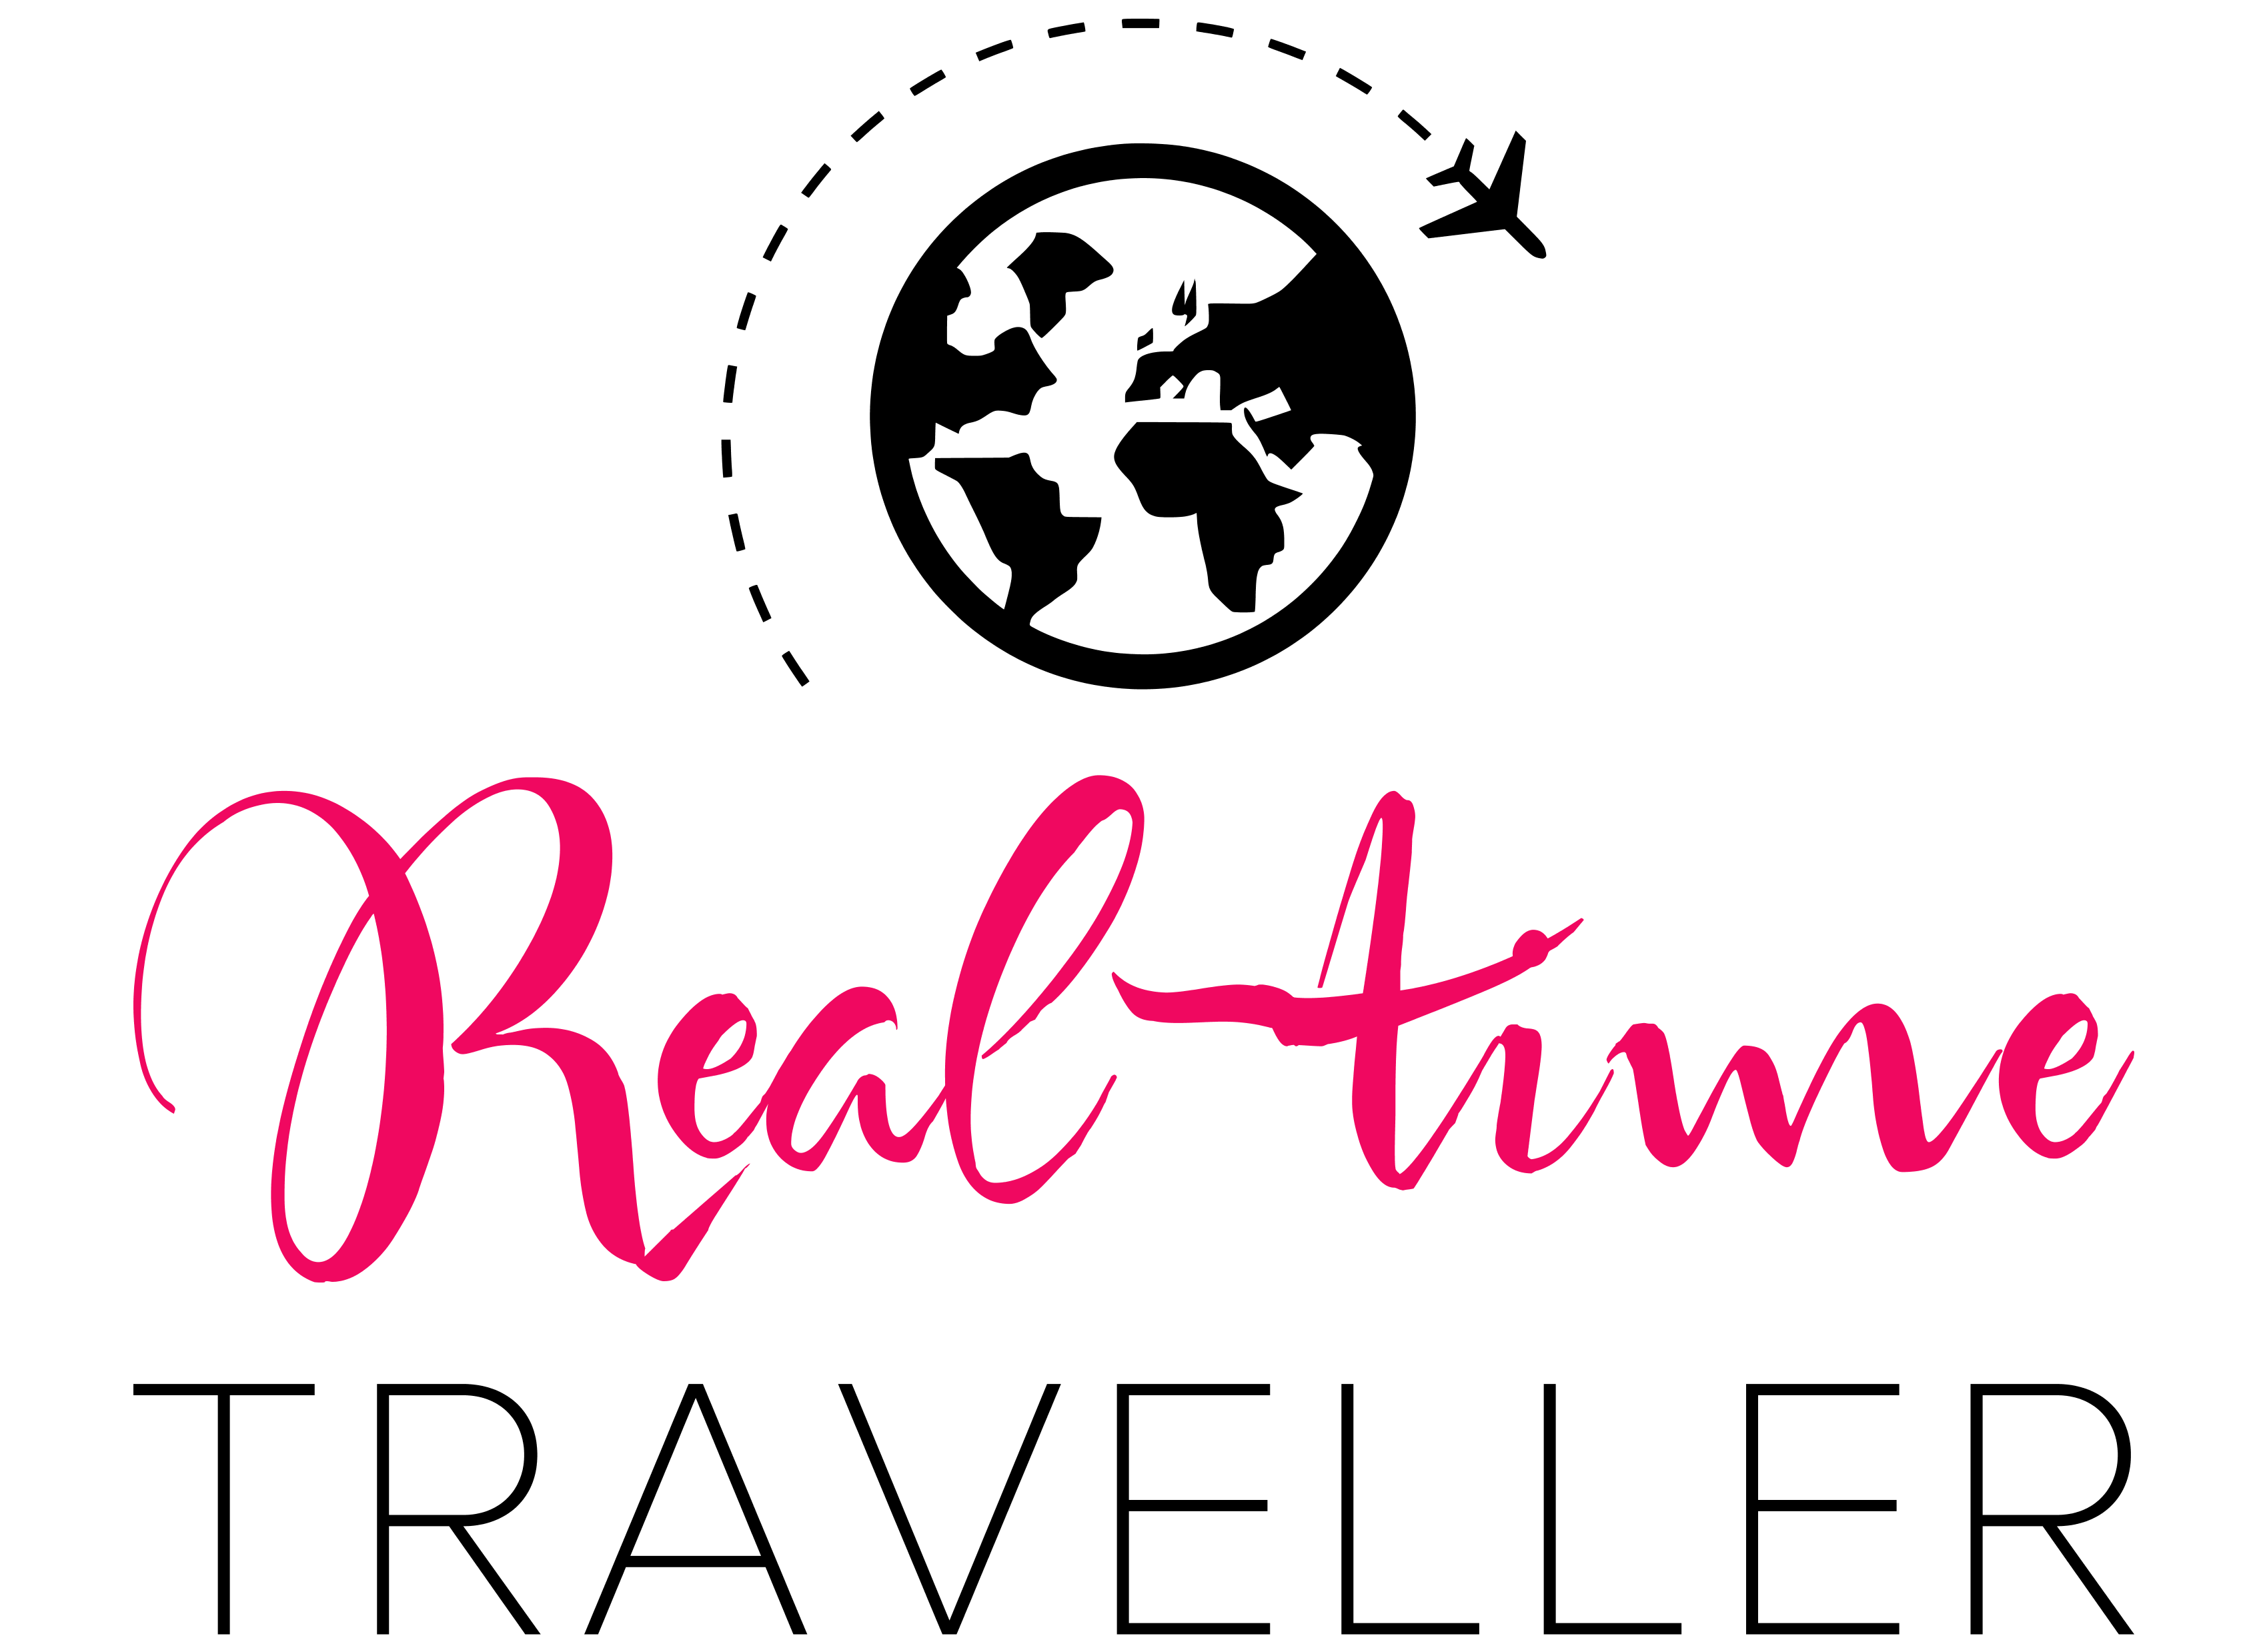 Real-Time Traveller